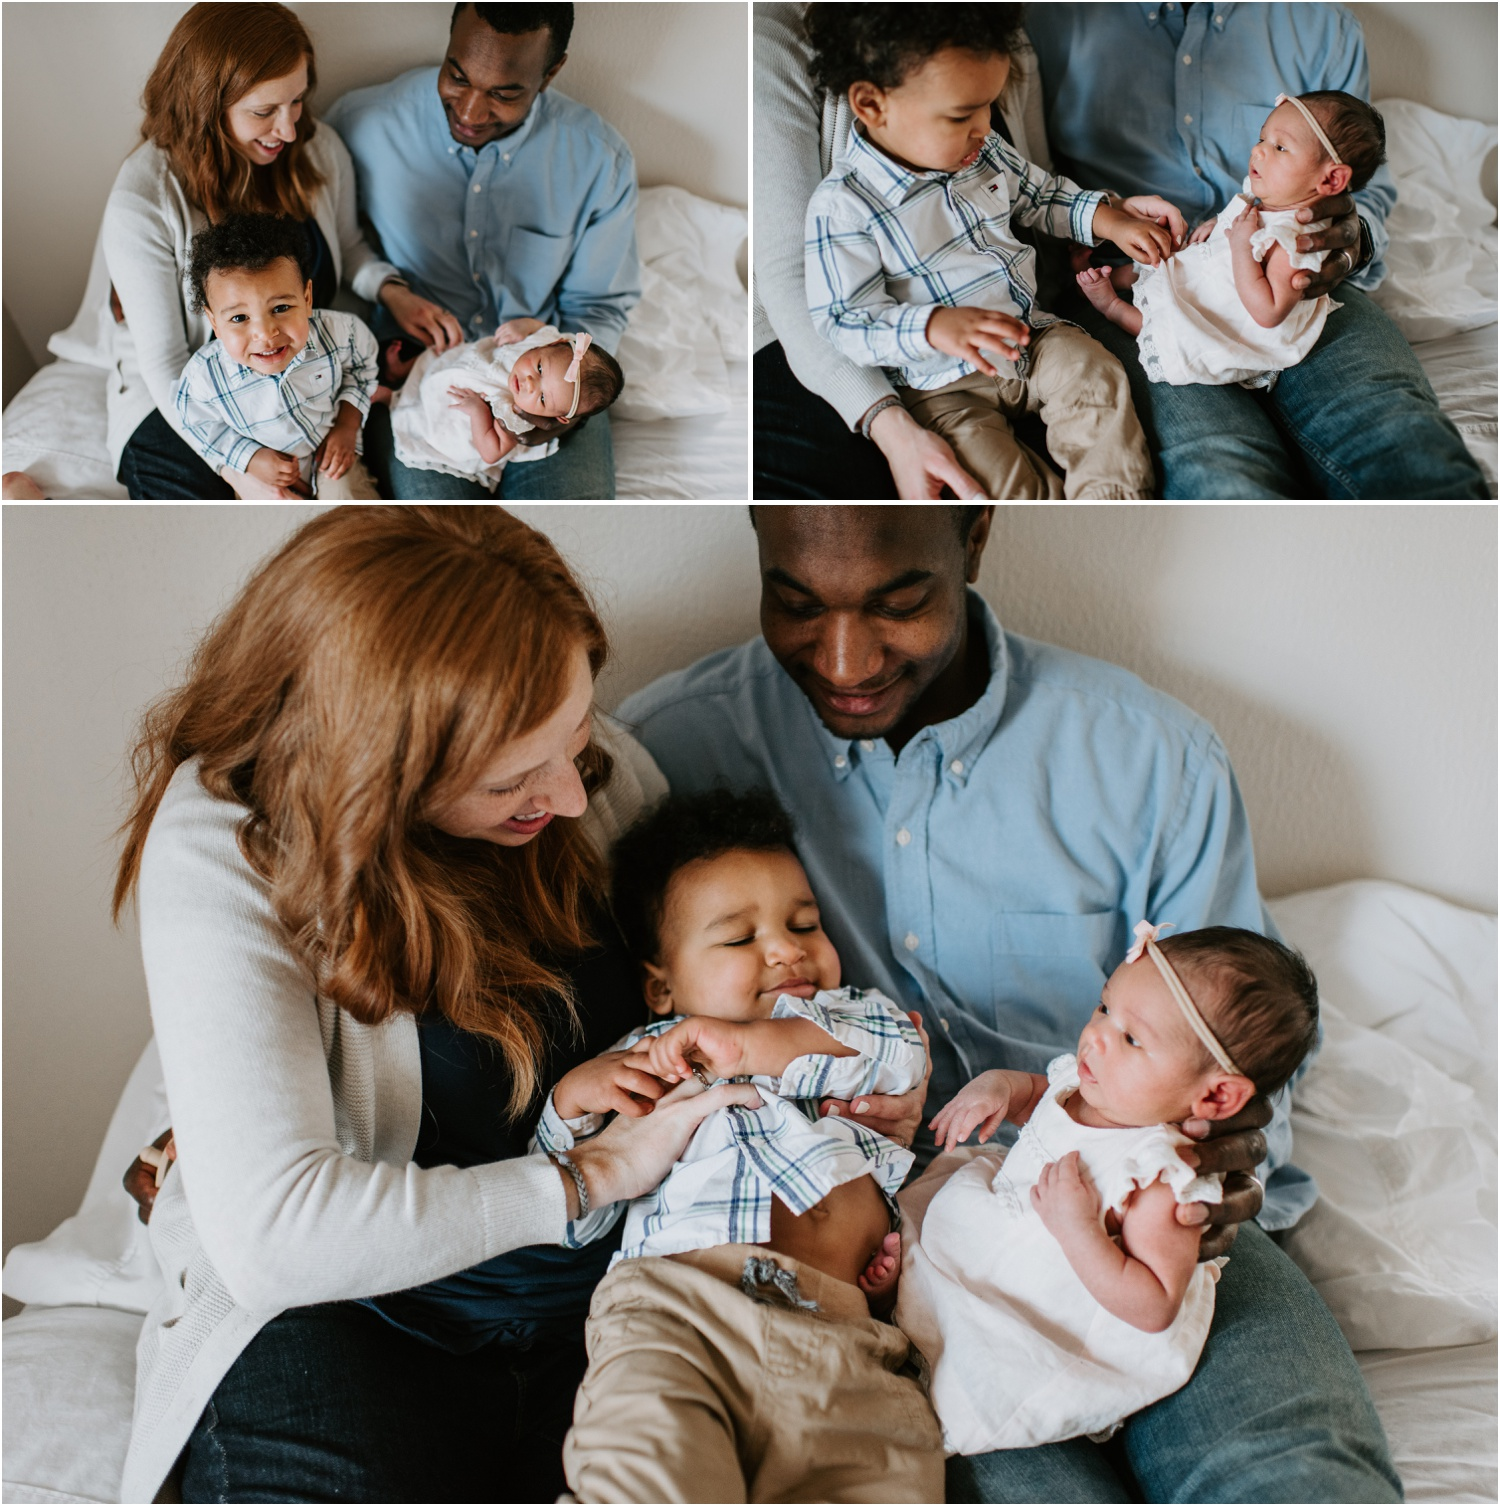 family laughing together on bed newborn session memphis